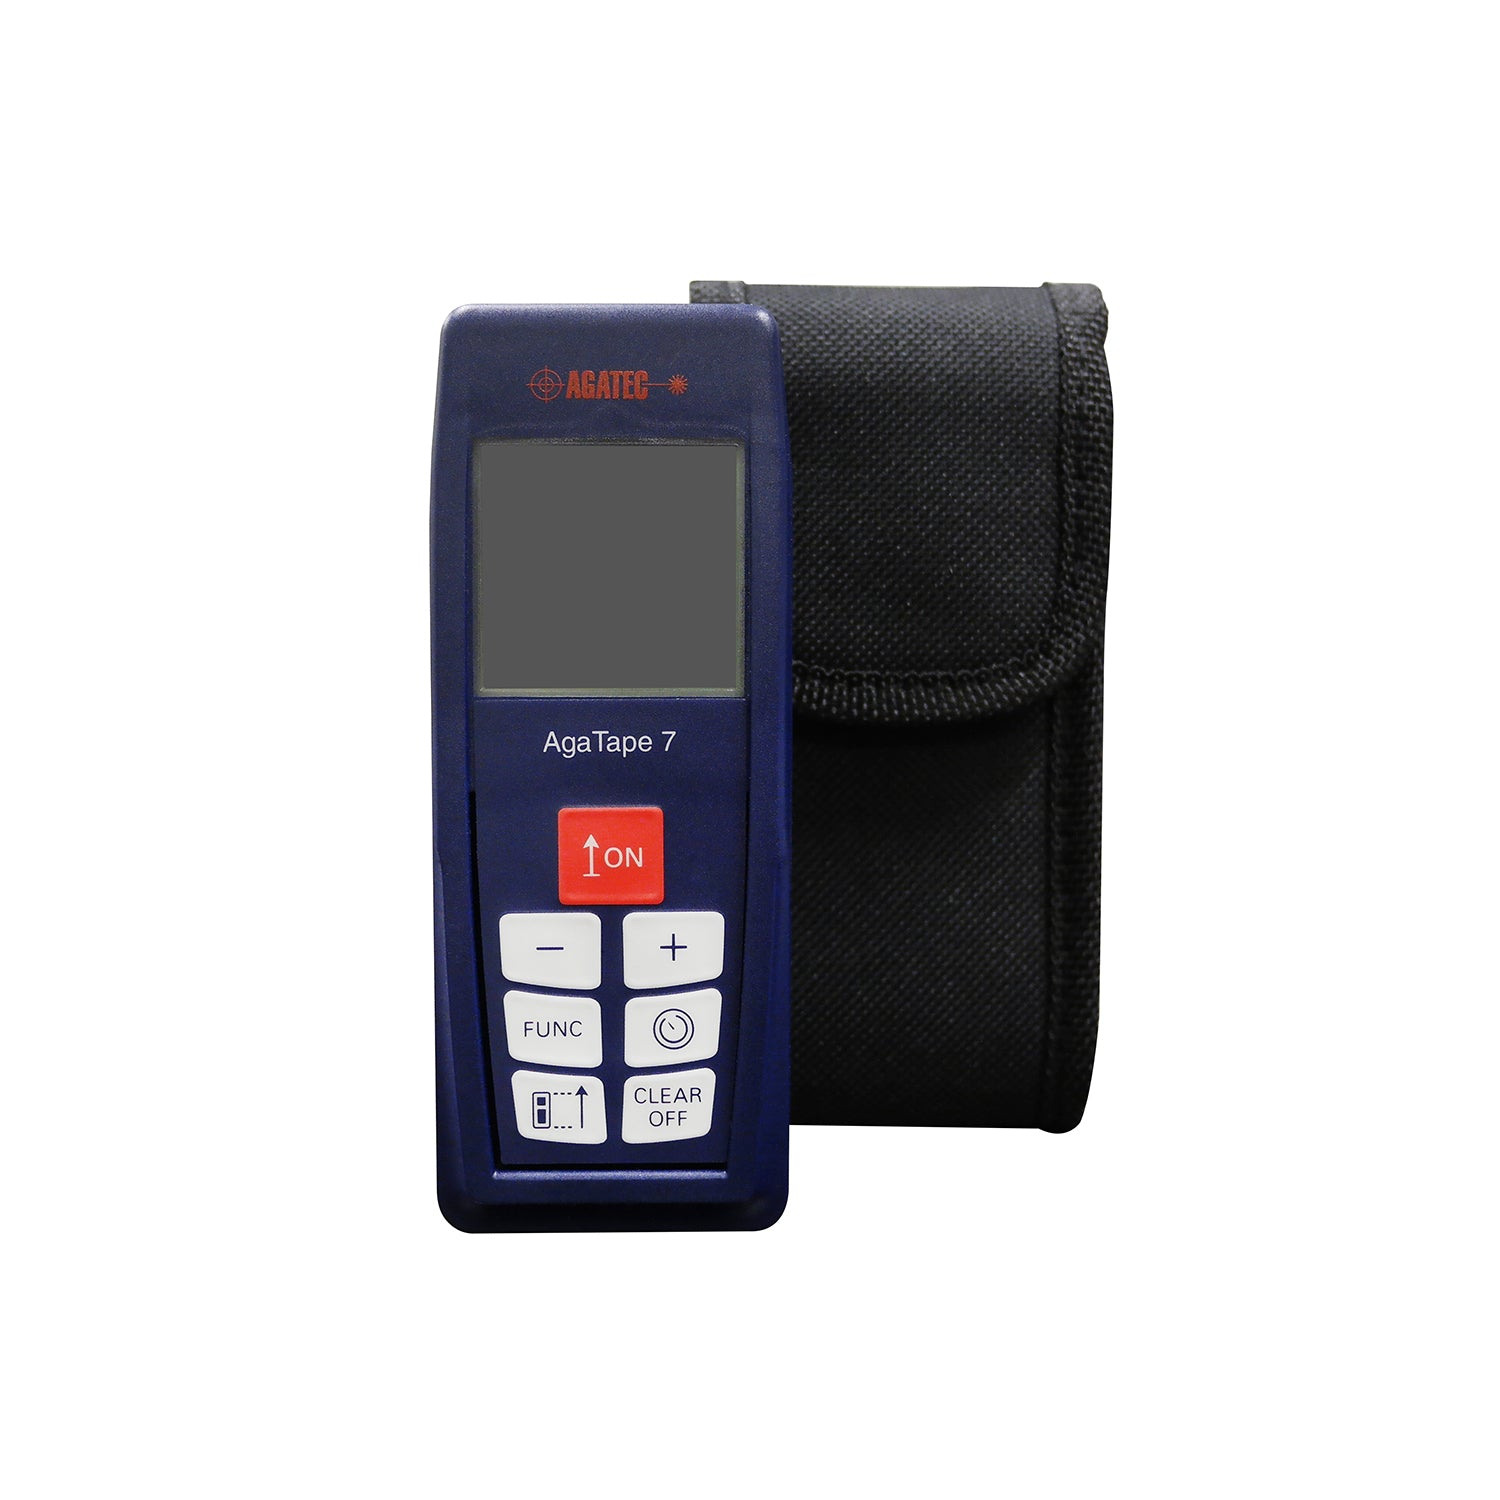 Agatec Agatape7 Laser Distance Meter -Measurement Tools- eGPS Solutions Inc.